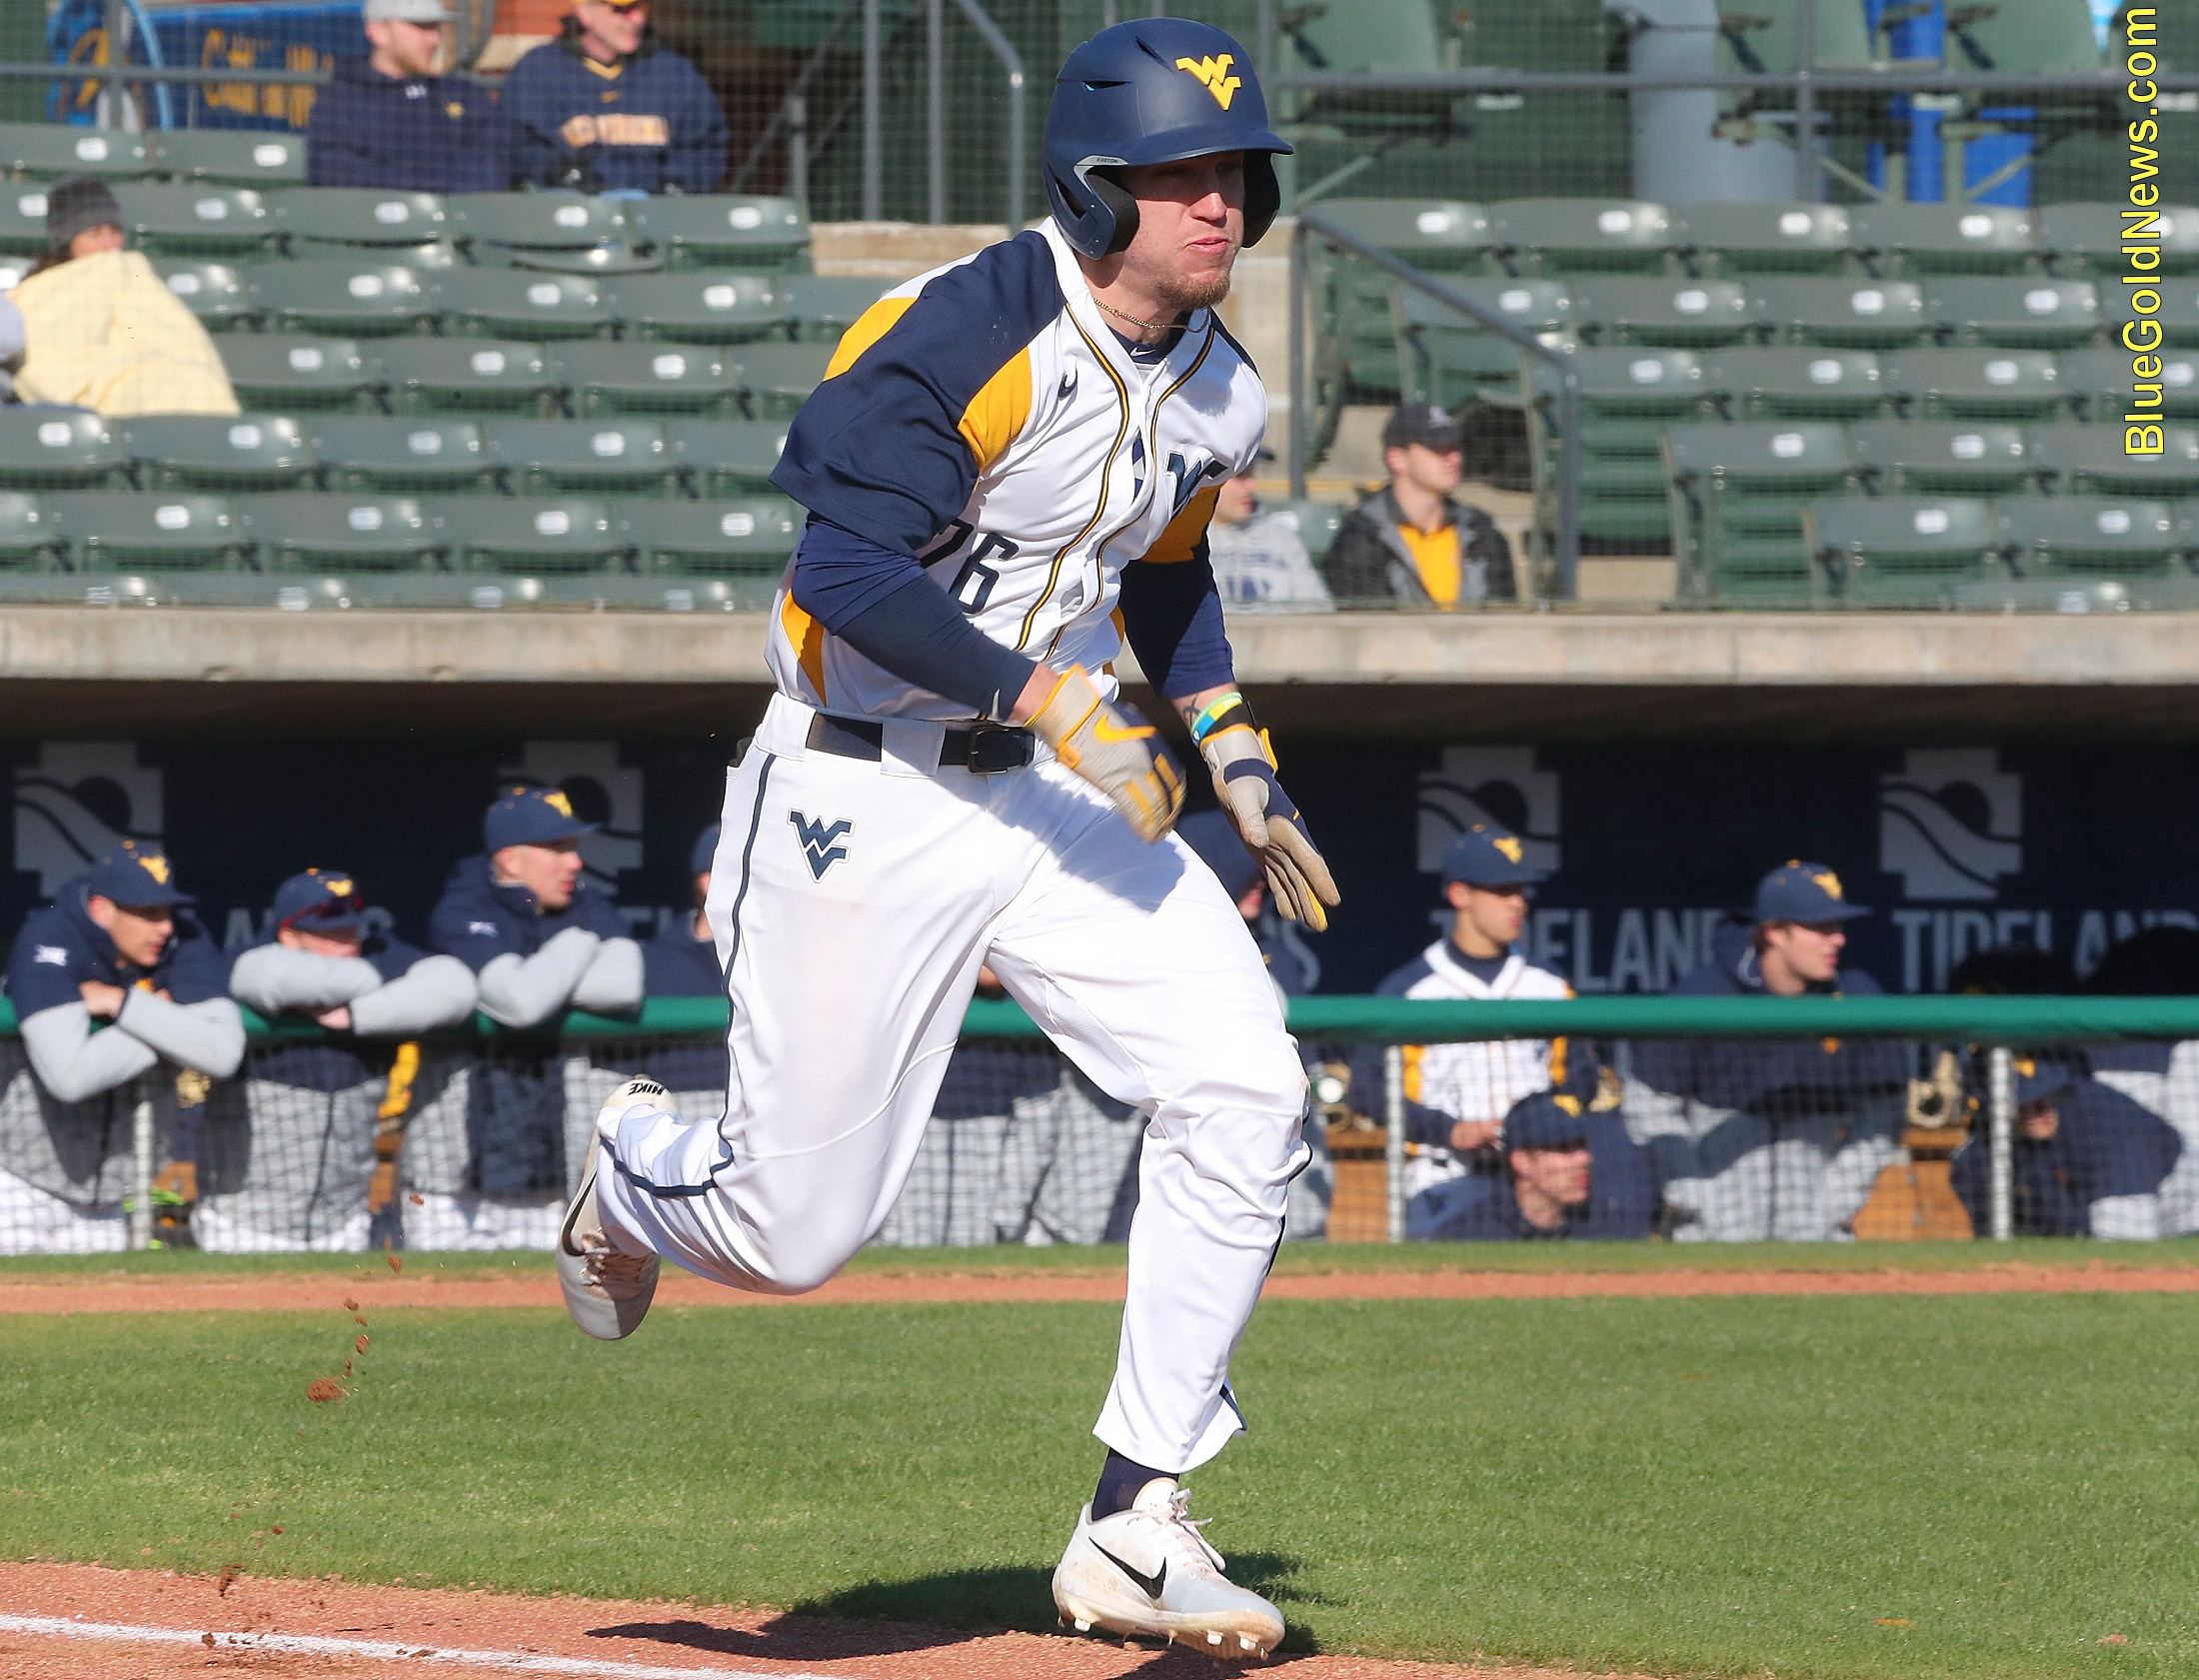 West Virginia outfielder Braden Zarbnisky hustles down the line